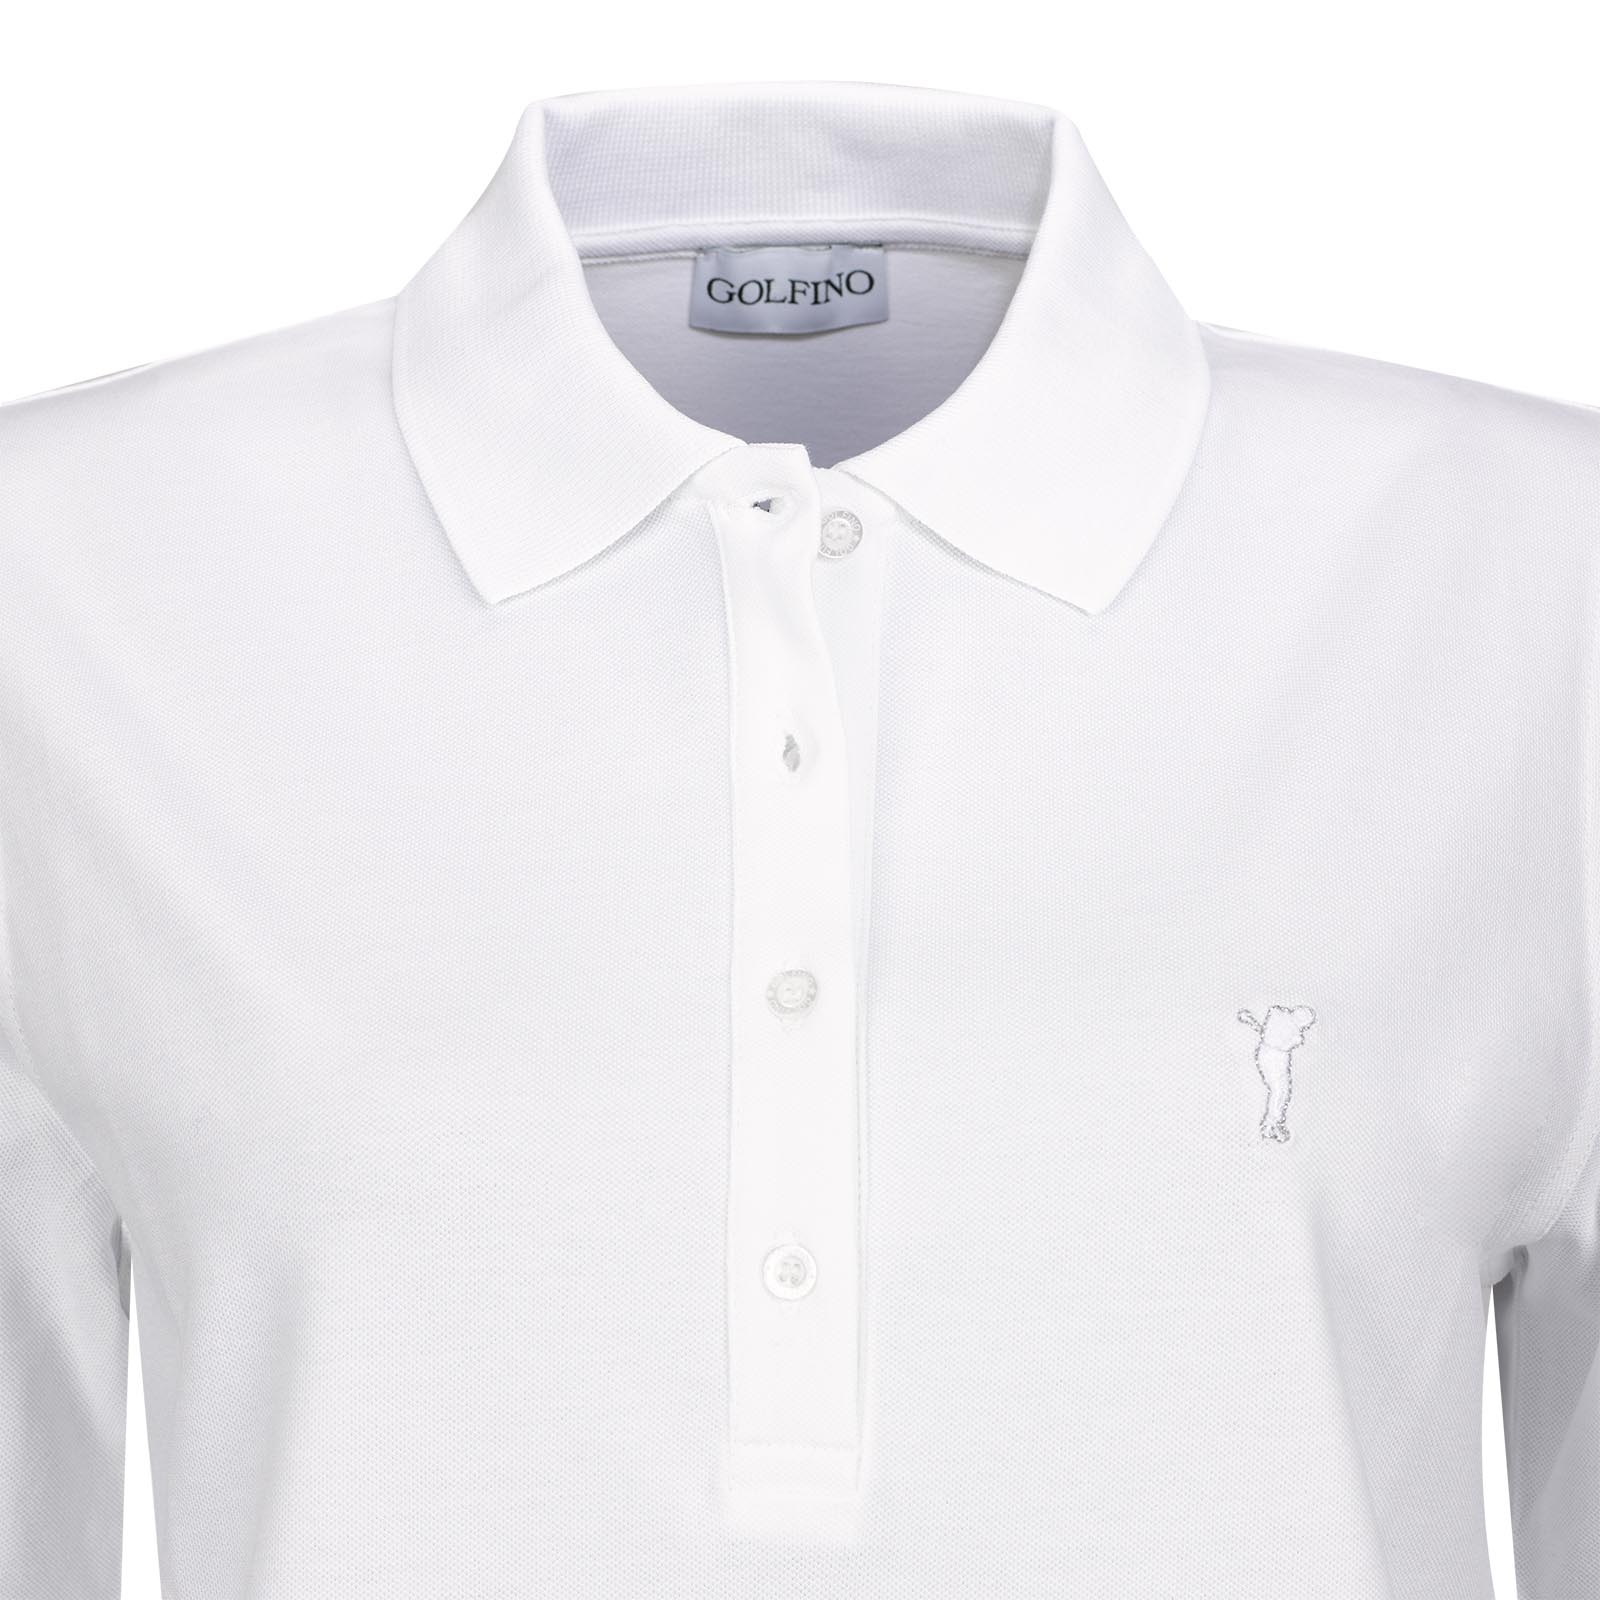 Basic Cotton Blend Damen Halbarm Golf-Polohemd mit Stretchfunktion